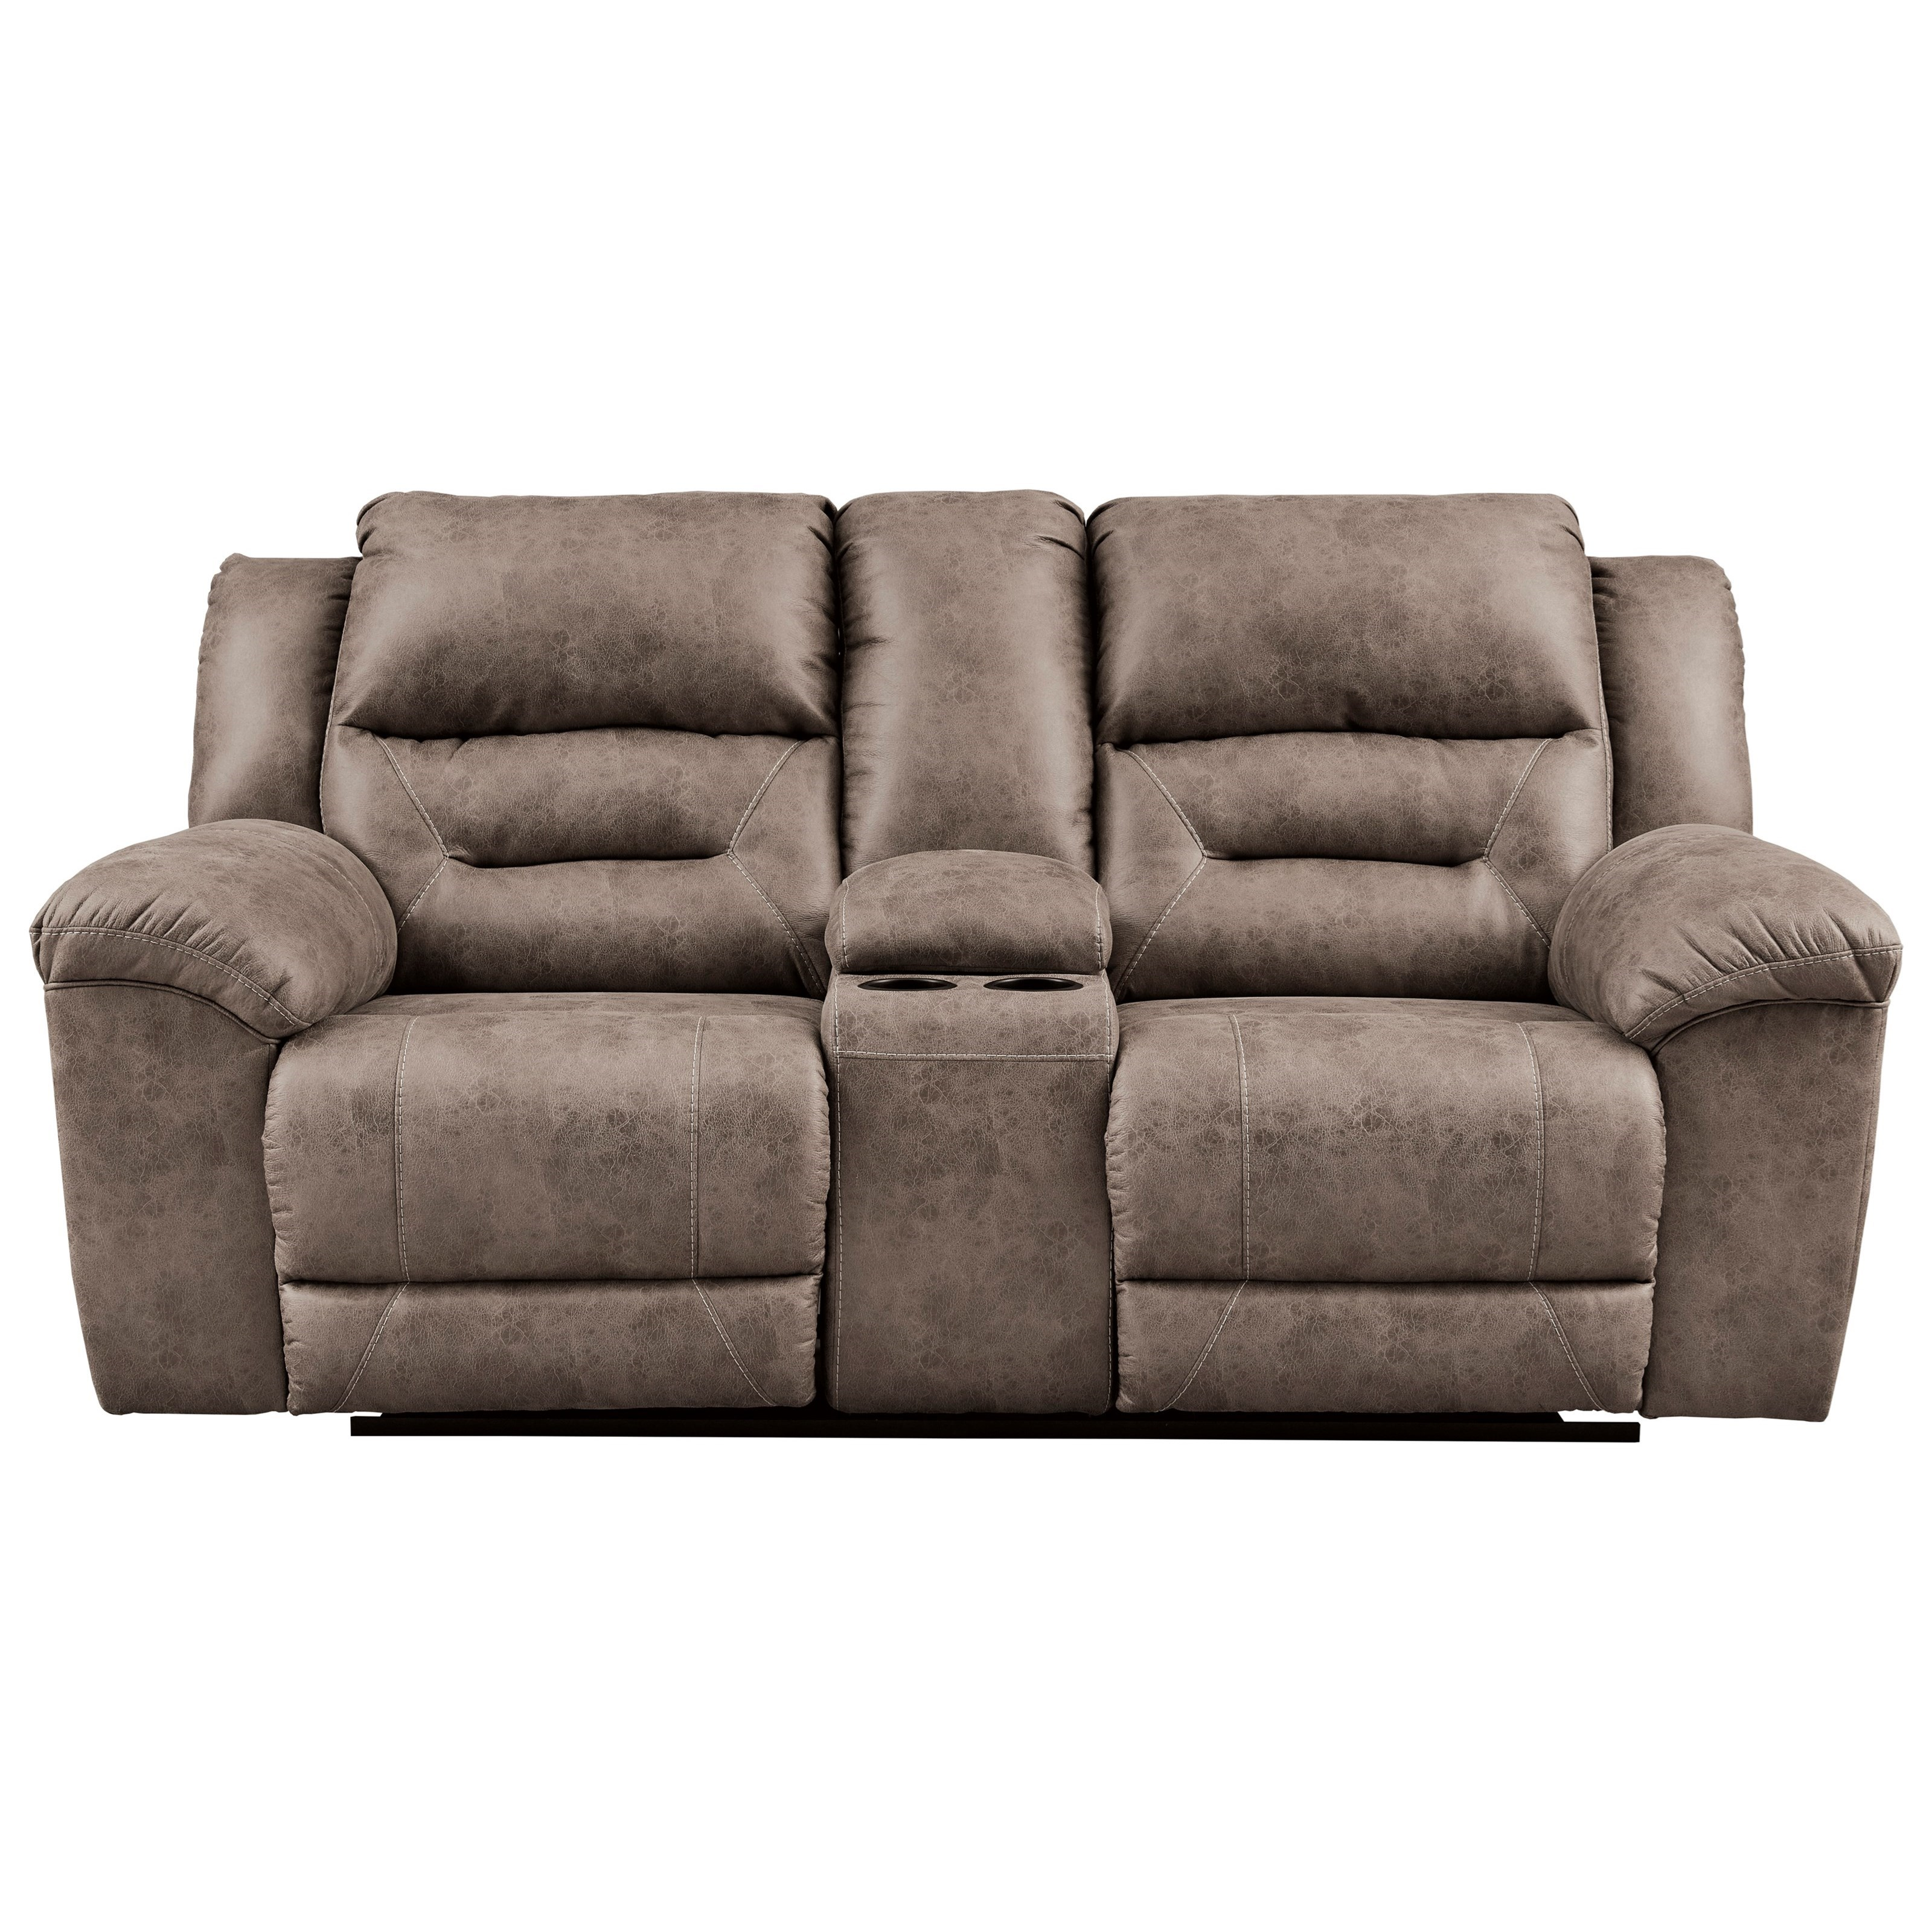 Stoneland Double Reclining Loveseat w/ Console by Signature Design by Ashley at HomeWorld Furniture